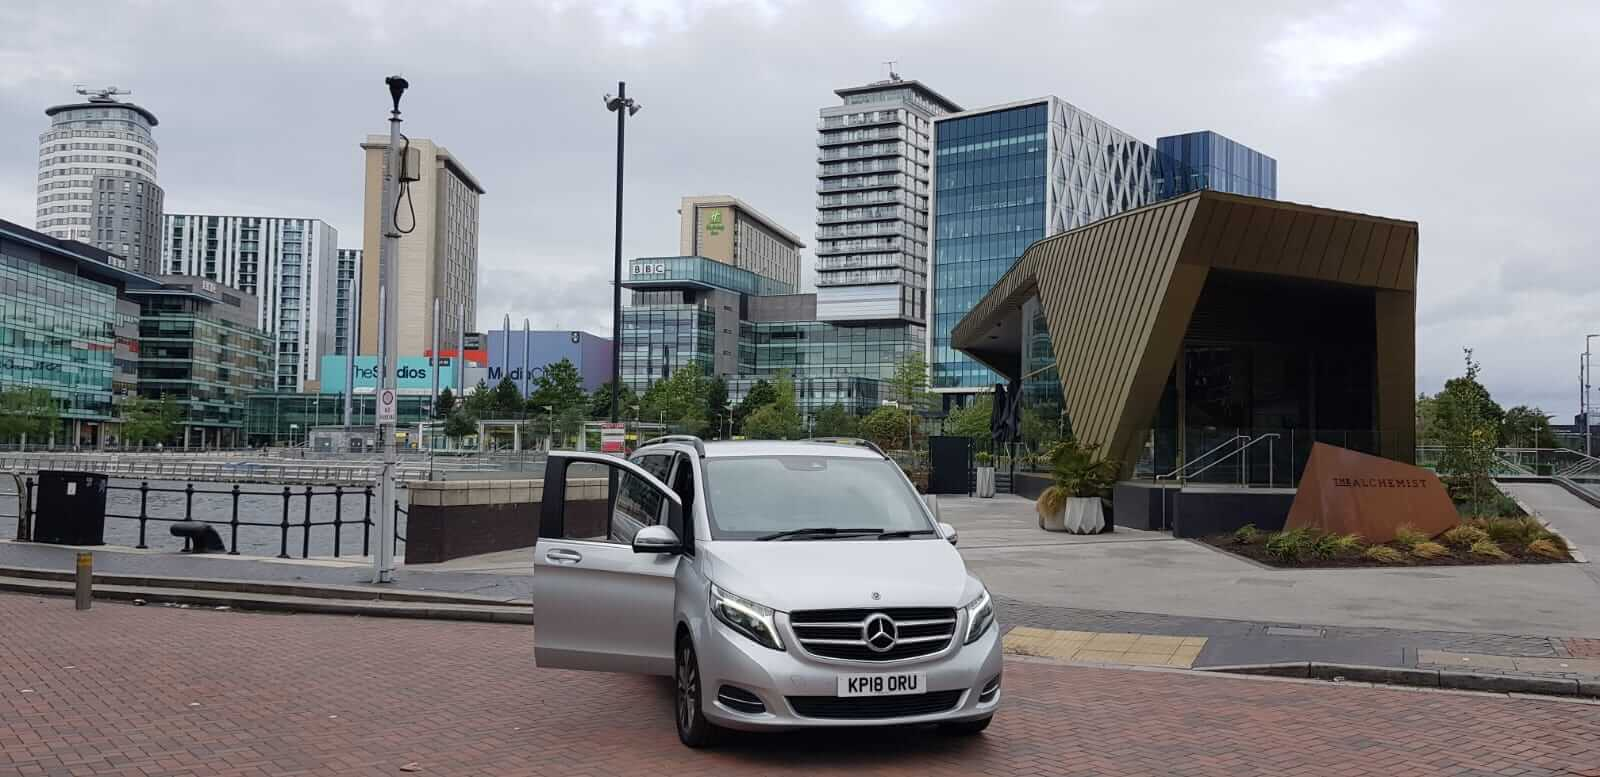 private airport taxis